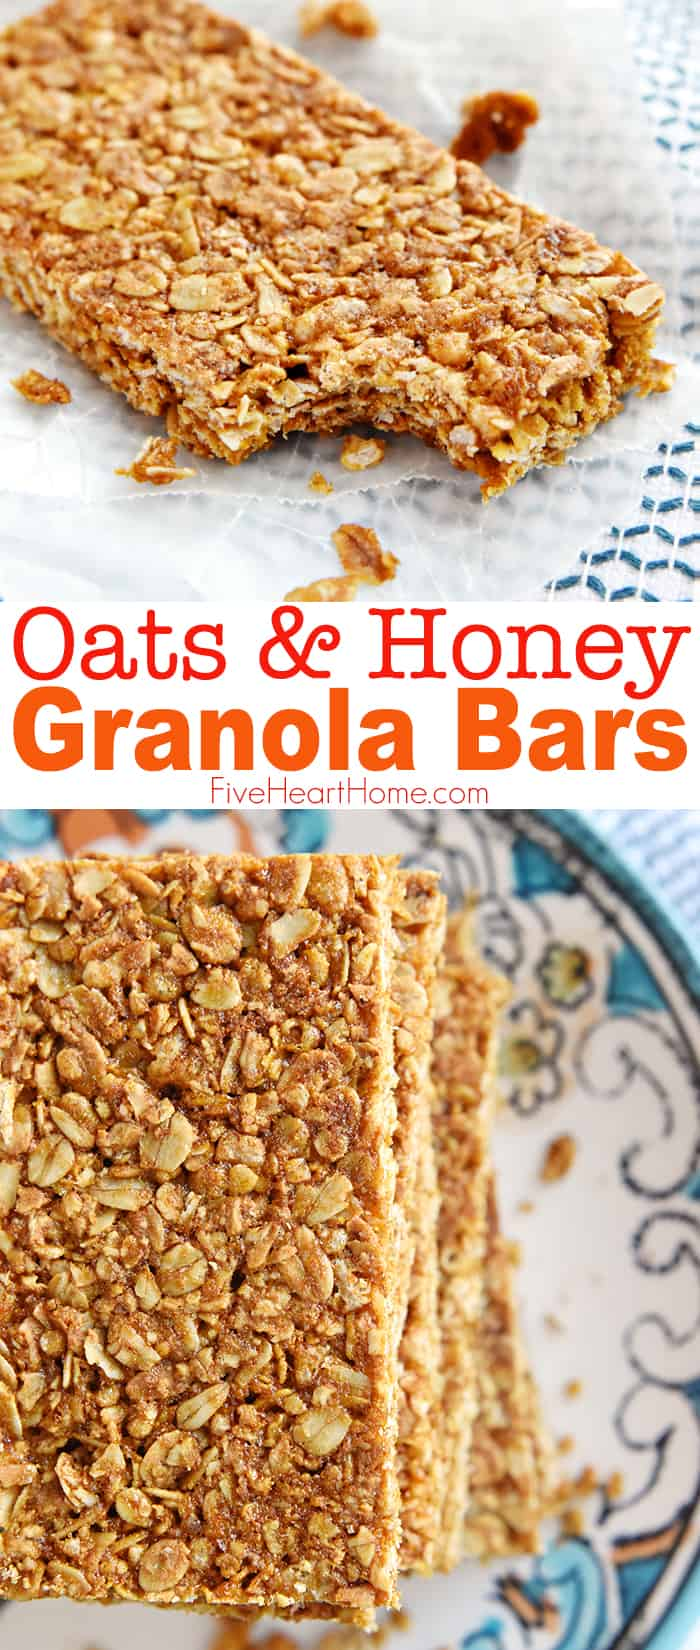 Oats and Honey Granola Bars ~ these homemade, all-natural granola bars are baked until slightly crunchy, making them perfect for breakfast-on-the-go or as a wholesome, portable snack! | FiveHeartHome.com #granolabars